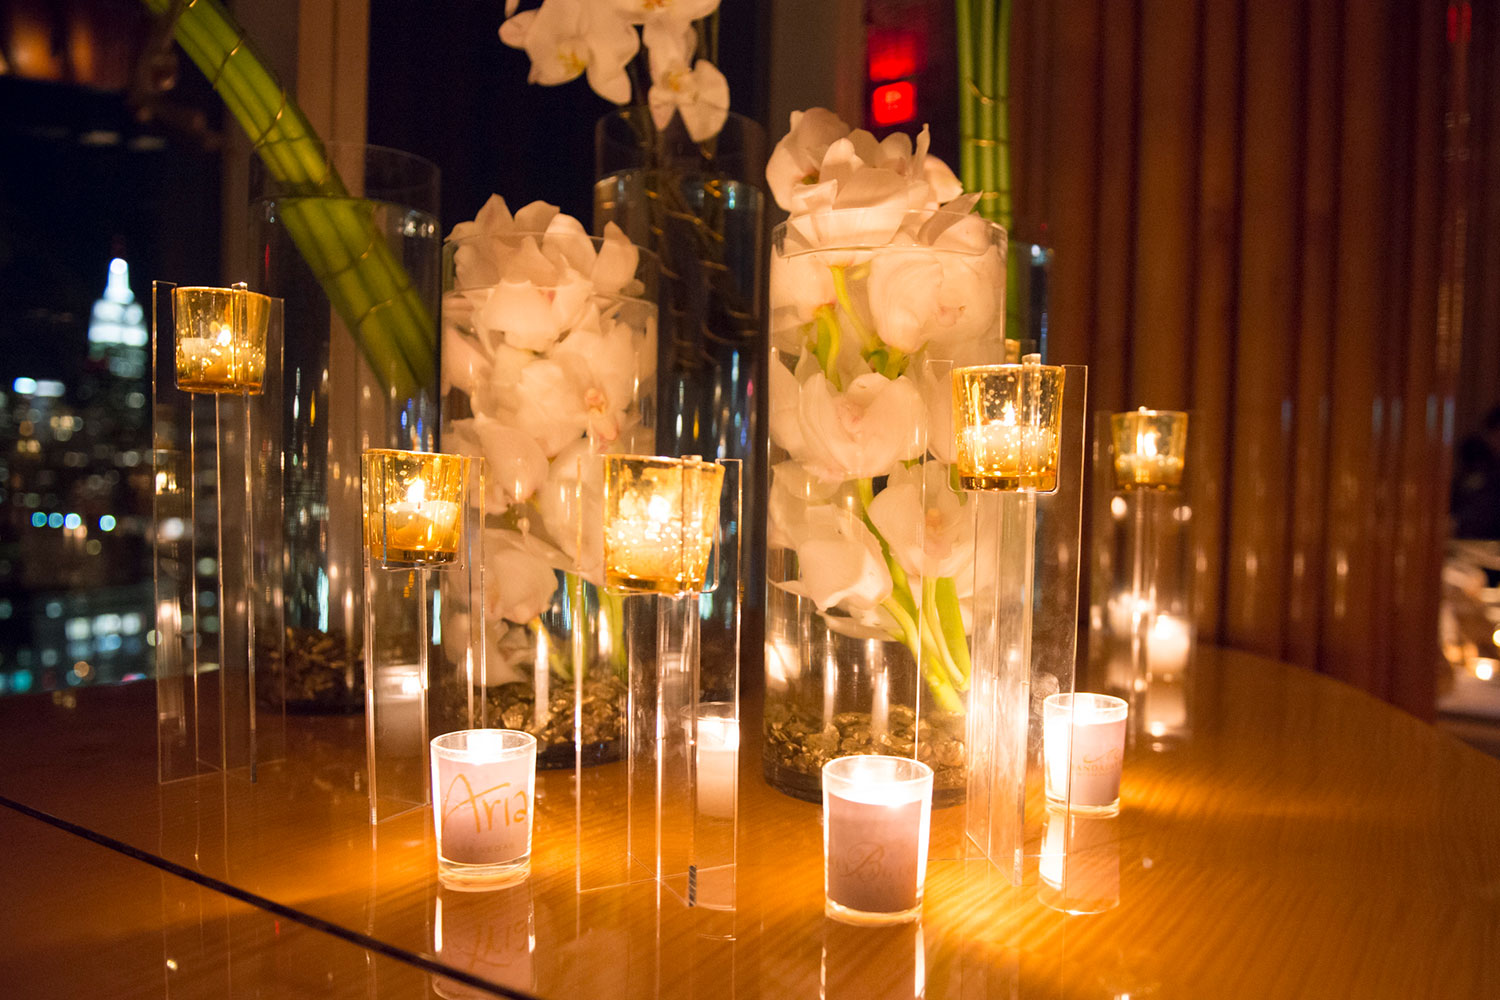 toast-candles-lighting-event-decoration-10twelve.jpg